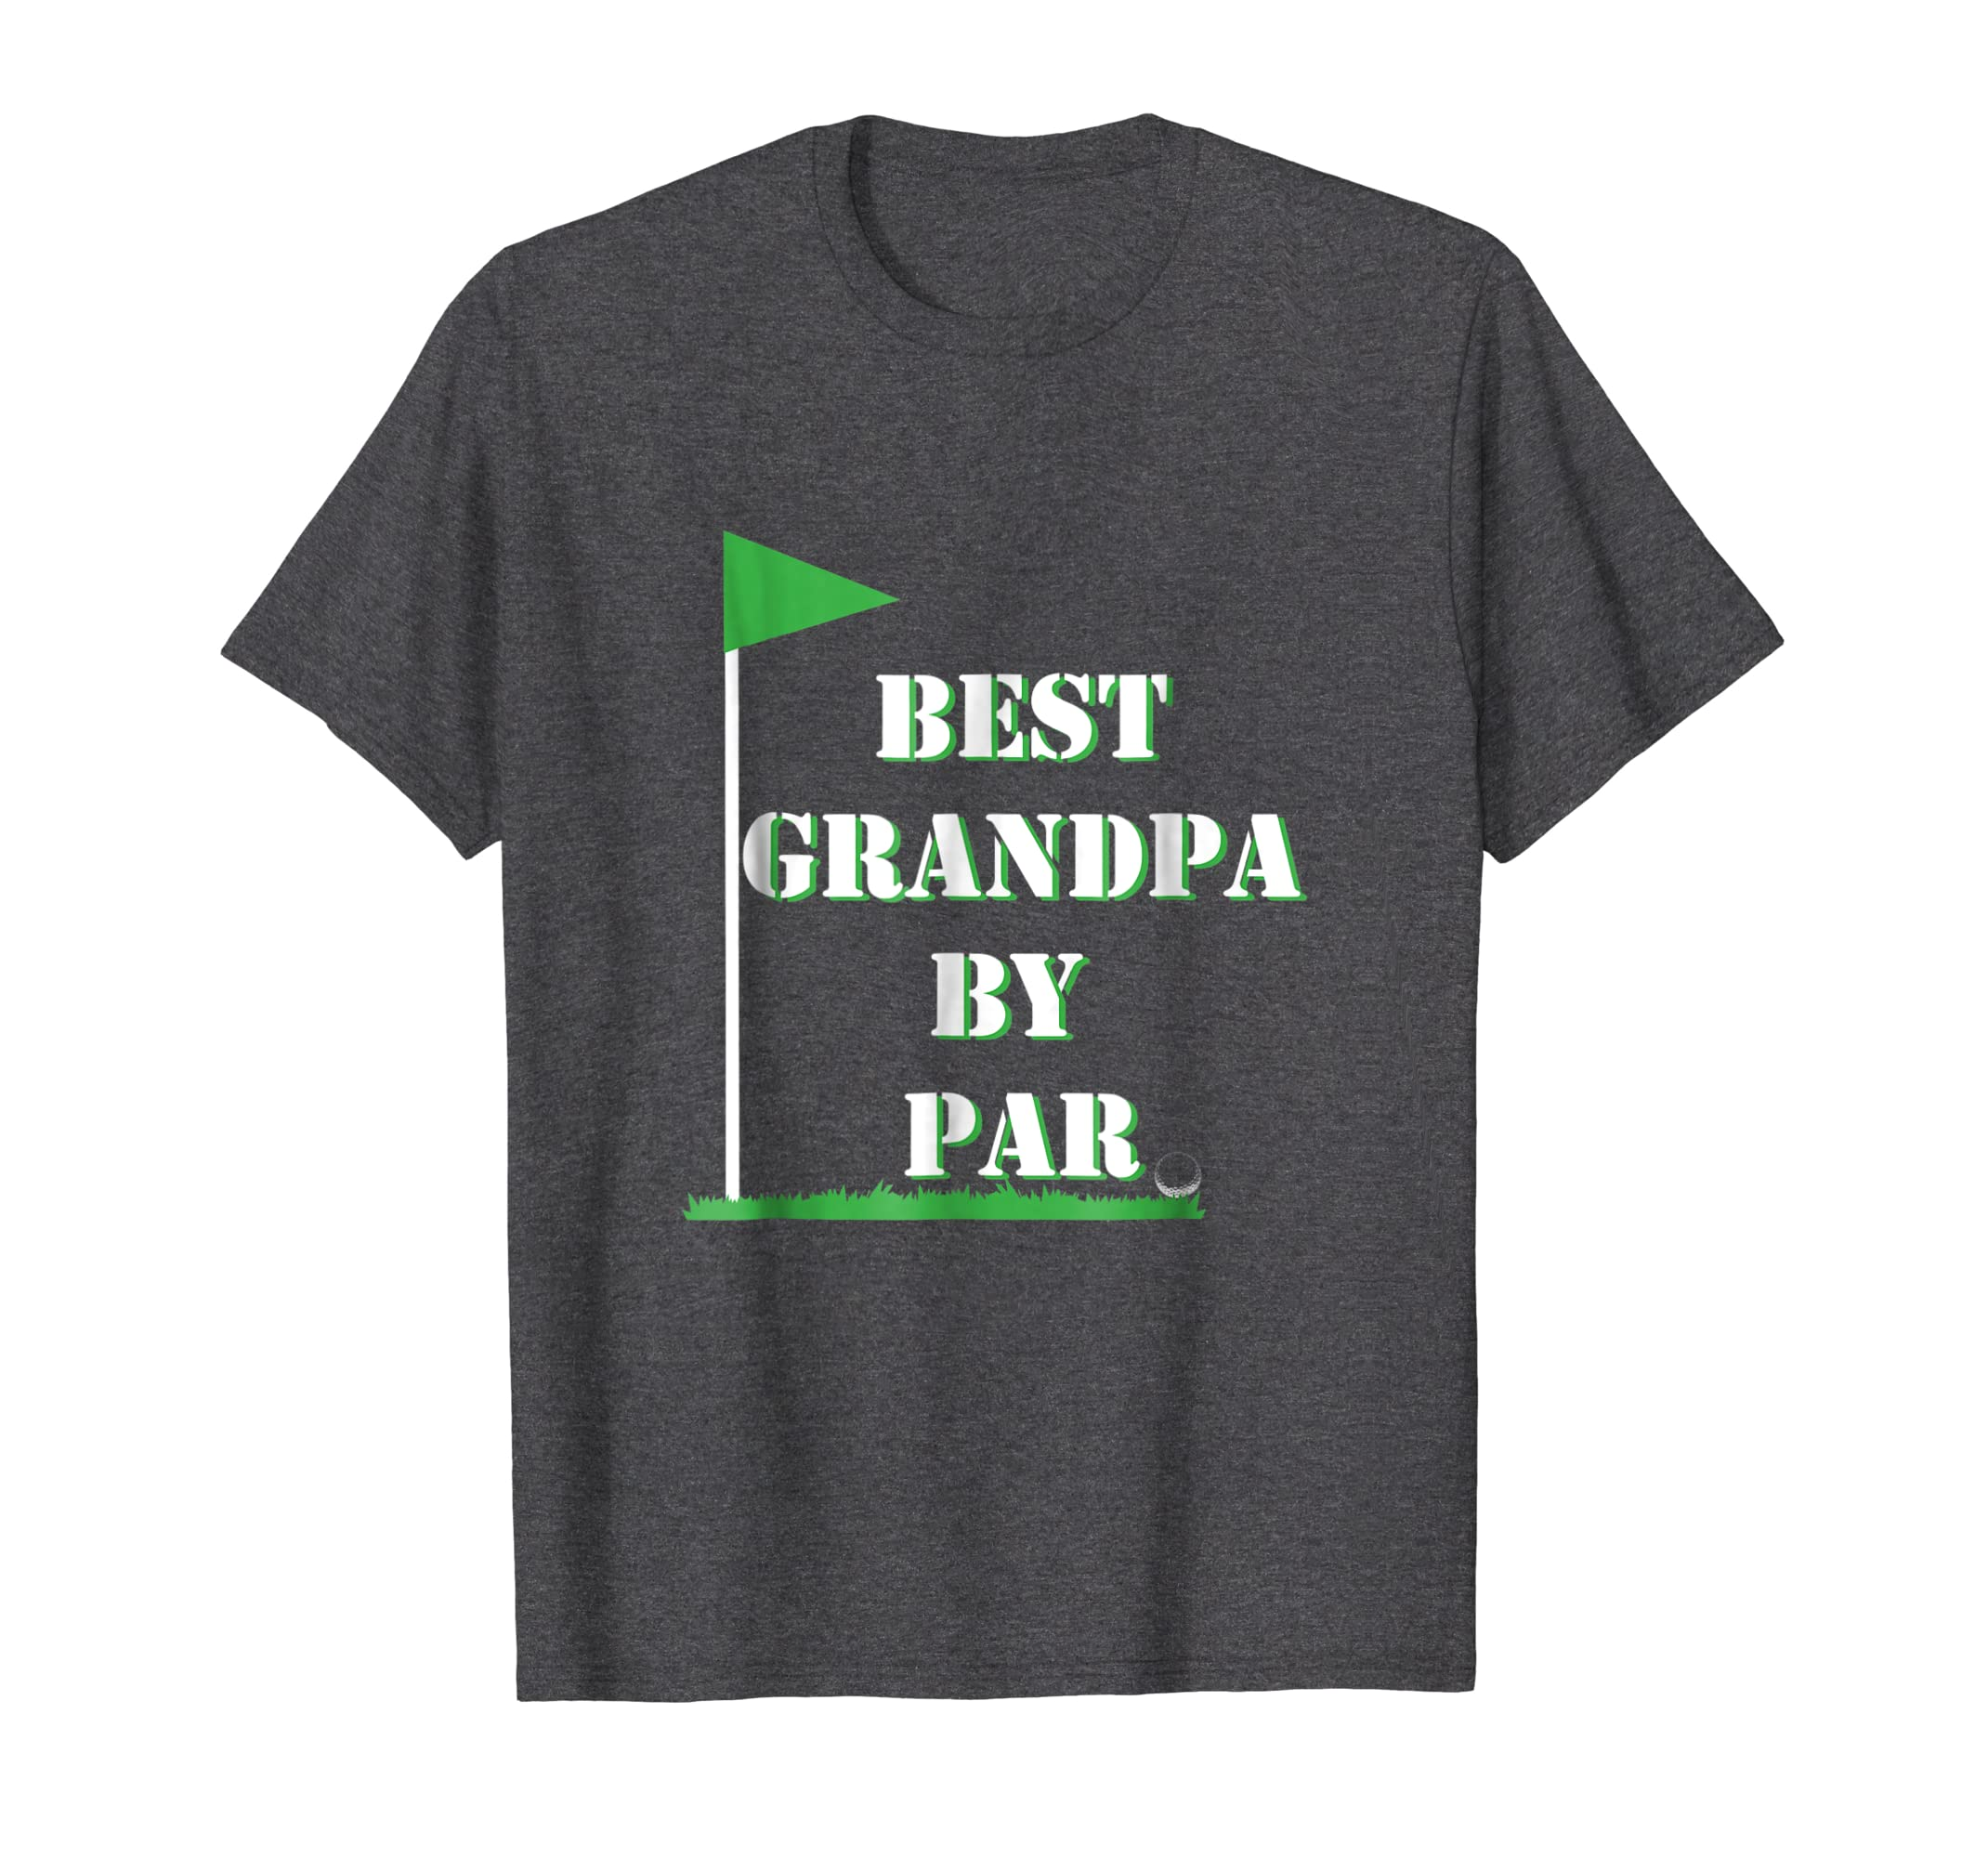 853cacc5 Amazon.com: Mens Father's Day Best Grandpa by Par Funny Golf Gift Shirt:  Clothing